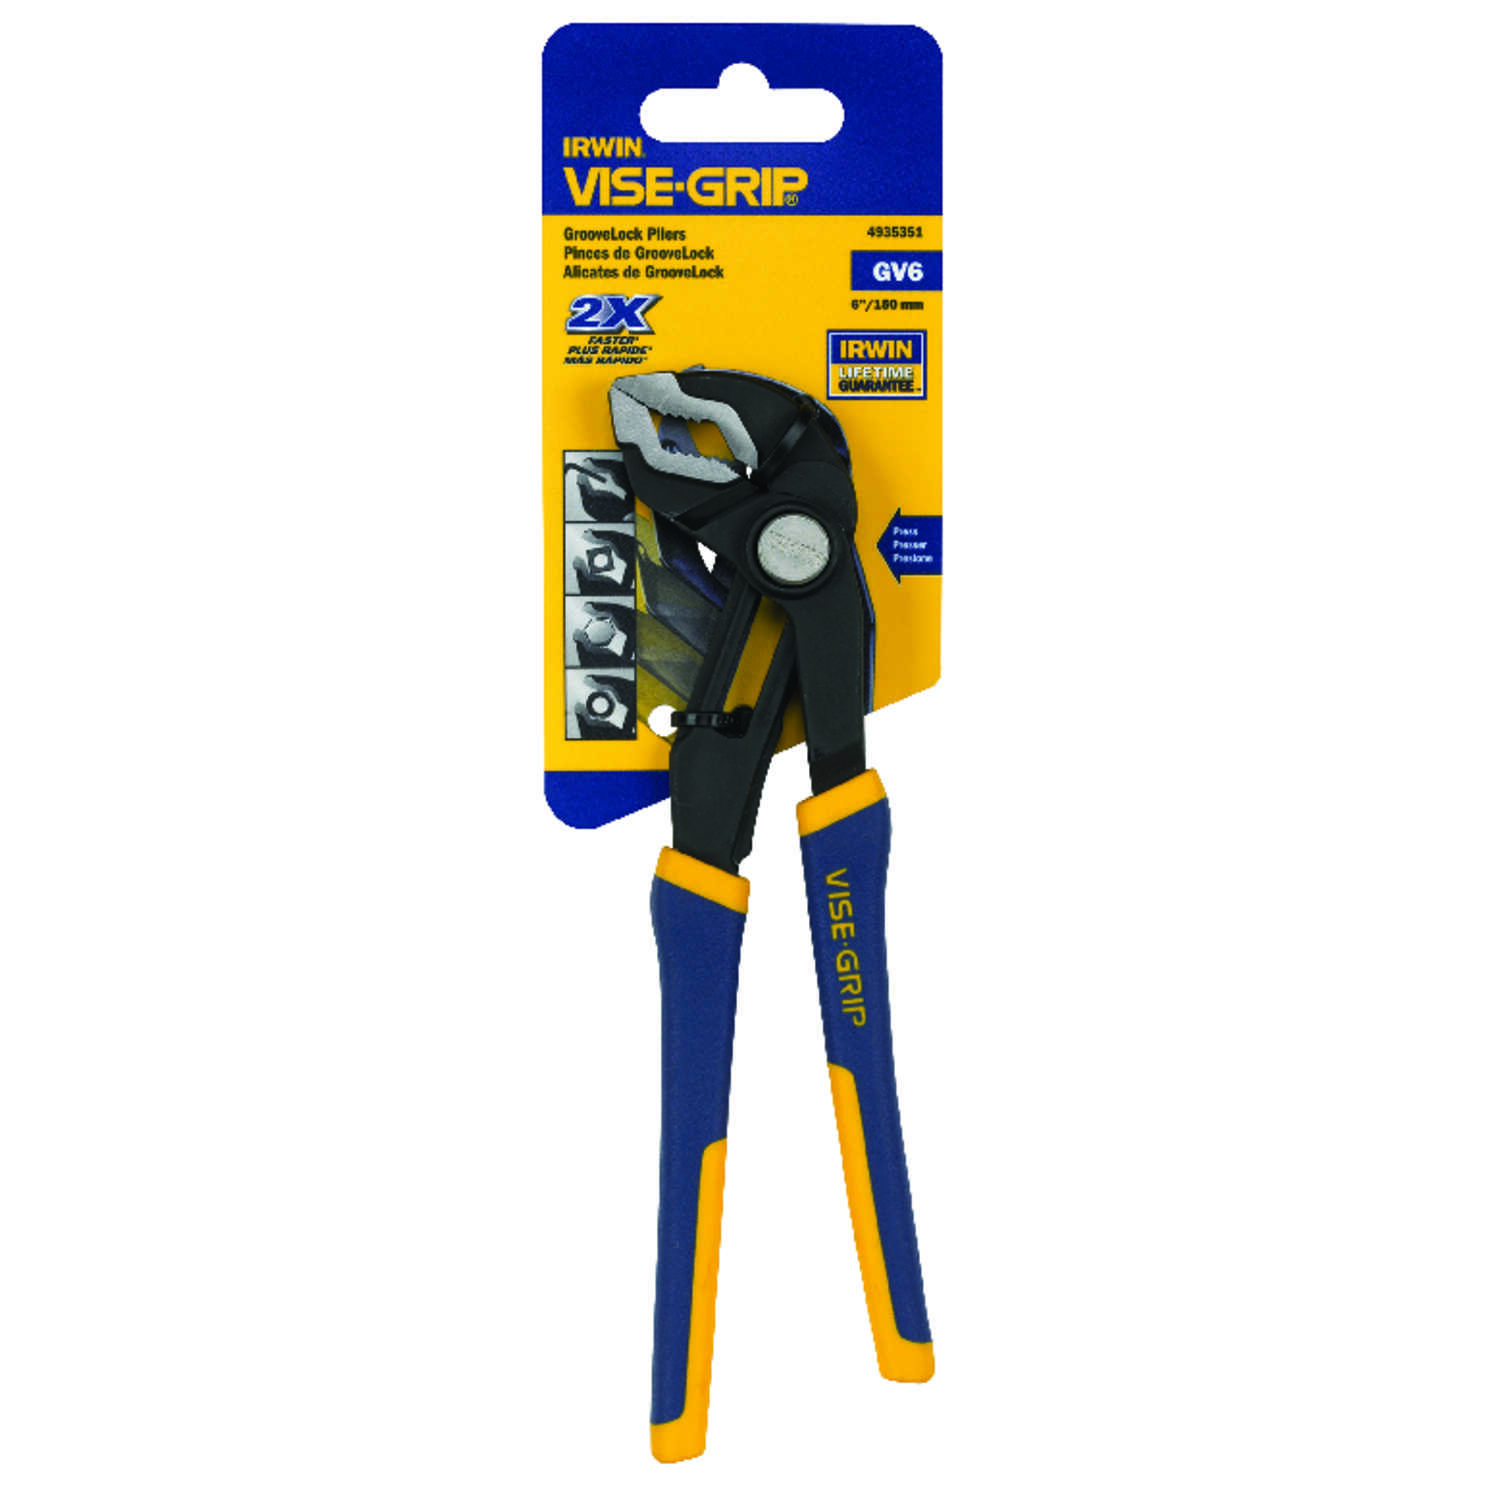 Irwin  Vise-Grip  6 in. Nickel Chrome Steel  Tongue and Groove Pliers  Blue/Yellow  1 pk